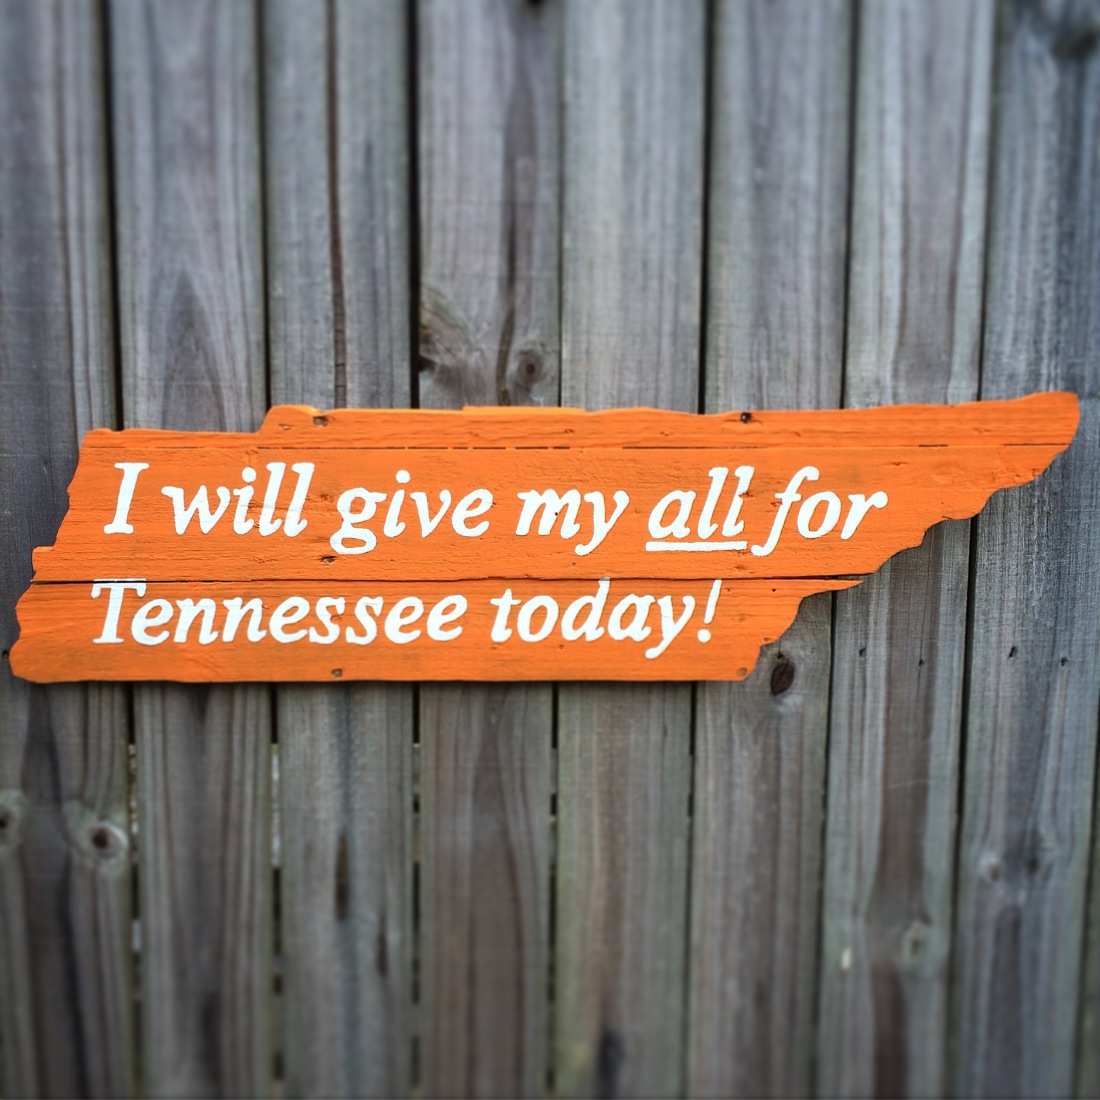 TennesseeToday